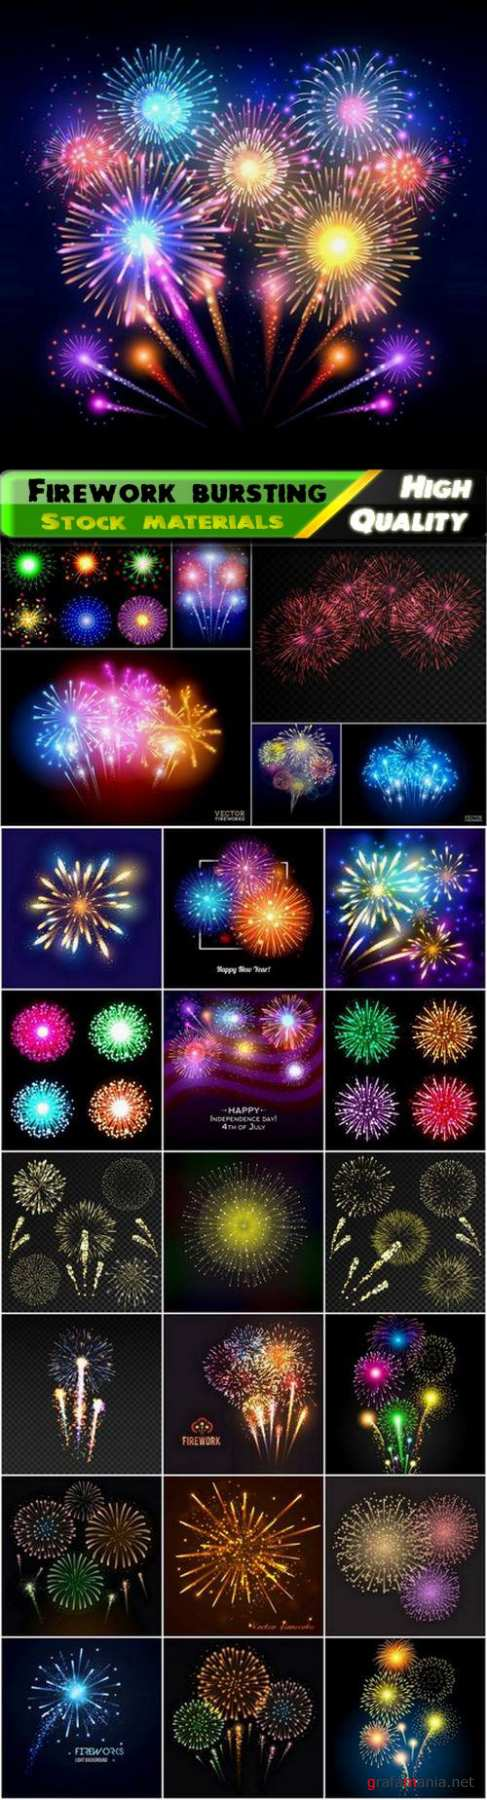 Firework bursting and light effect with sparks and flashes - 25 Eps